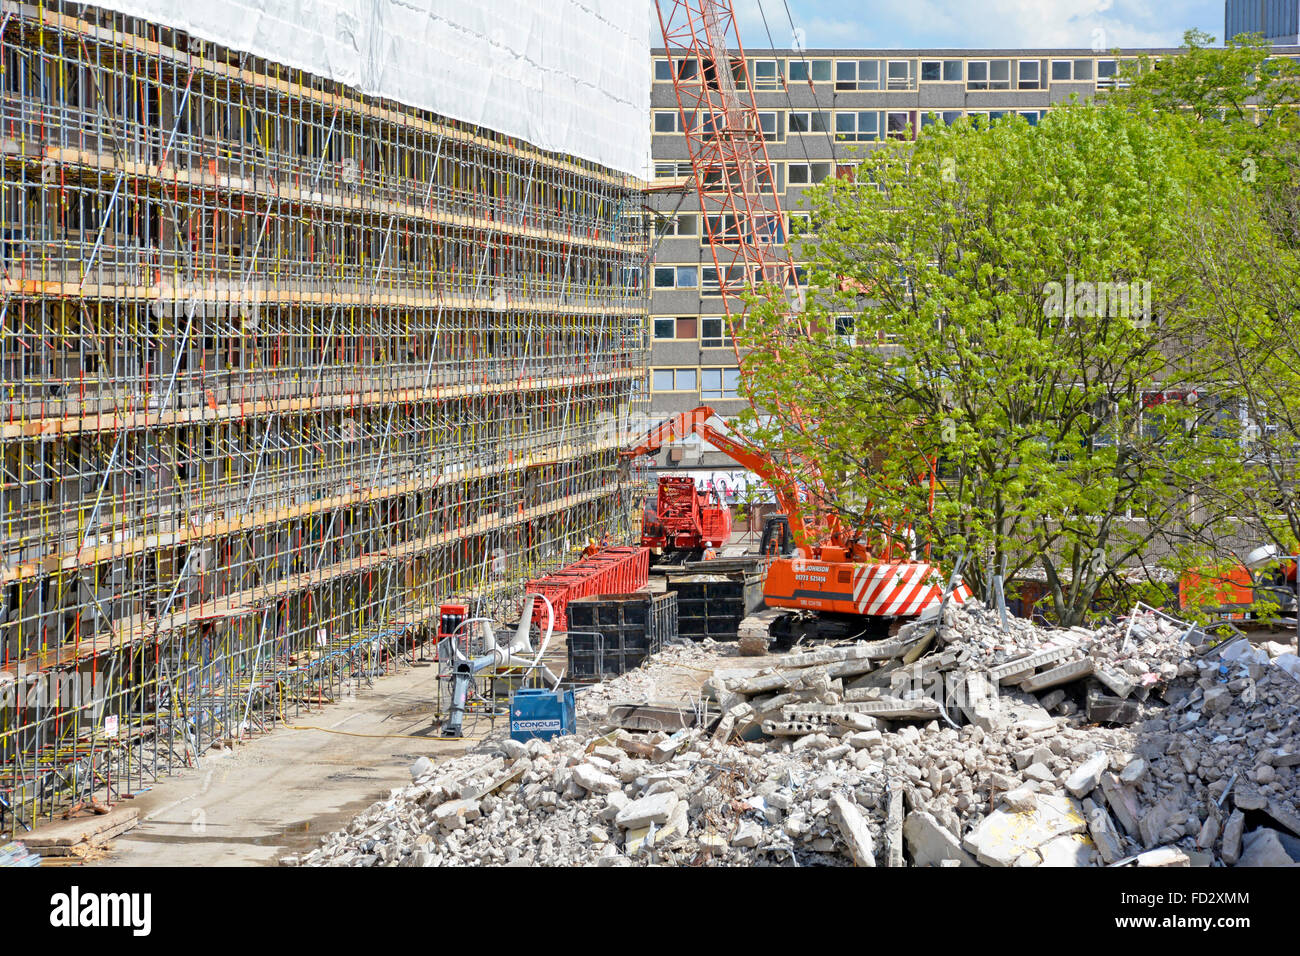 Demolition work in progress on the Heygate Estate with scaffolding and plastic sheeting erected to assist safe removal - Stock Image